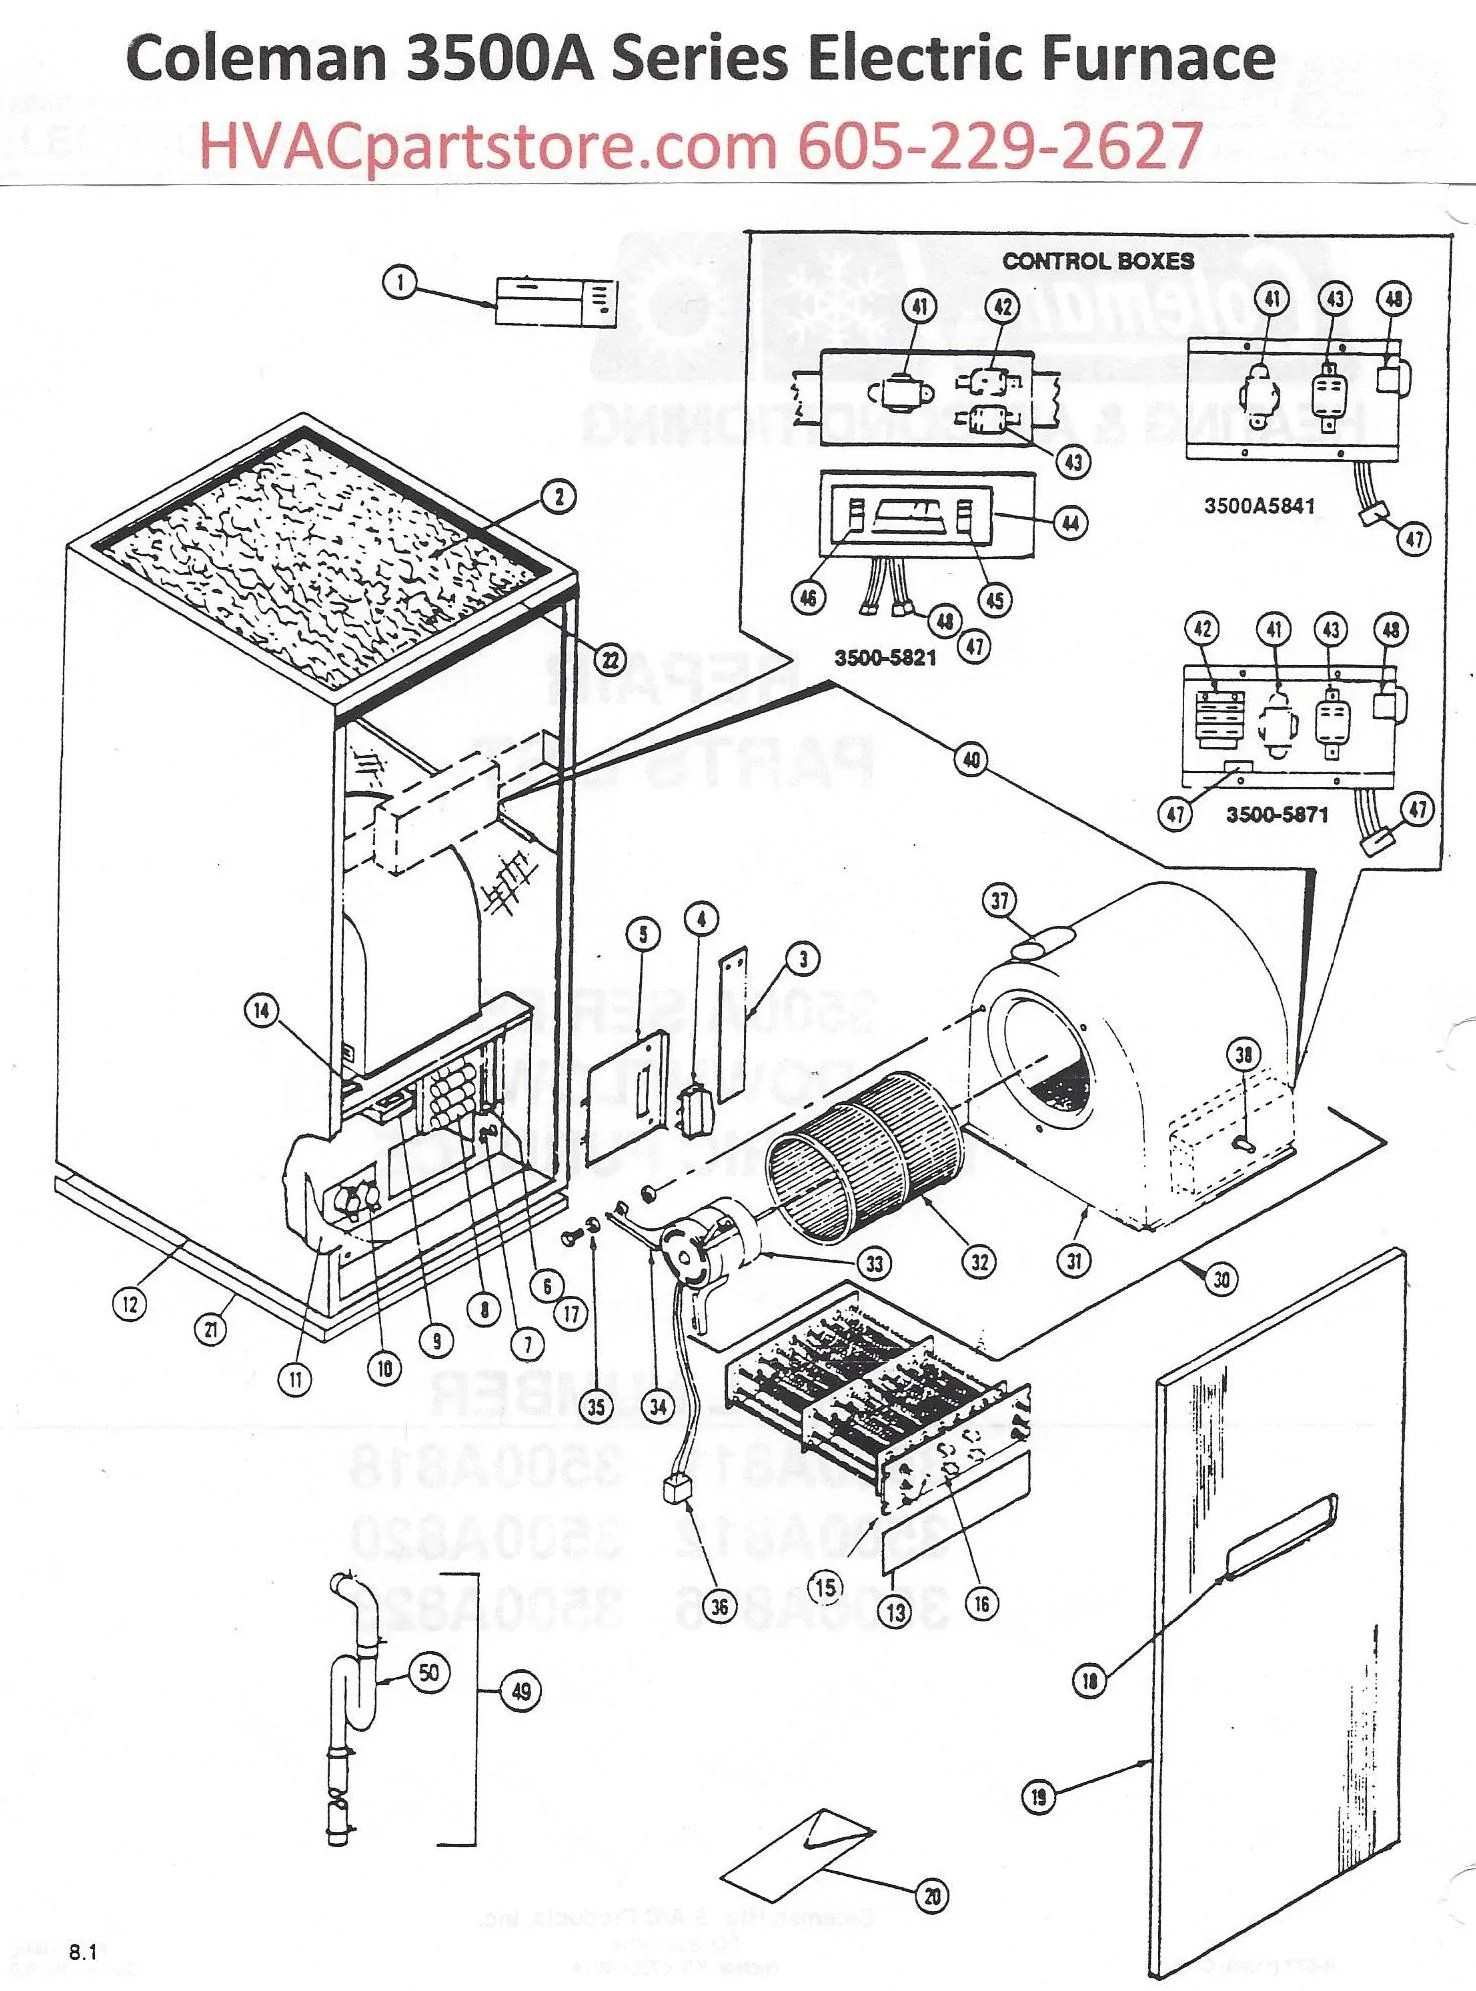 medium resolution of 3500a823 coleman electric furnace parts u2013 hvacpartstoreclick here to view an installation manual which includes